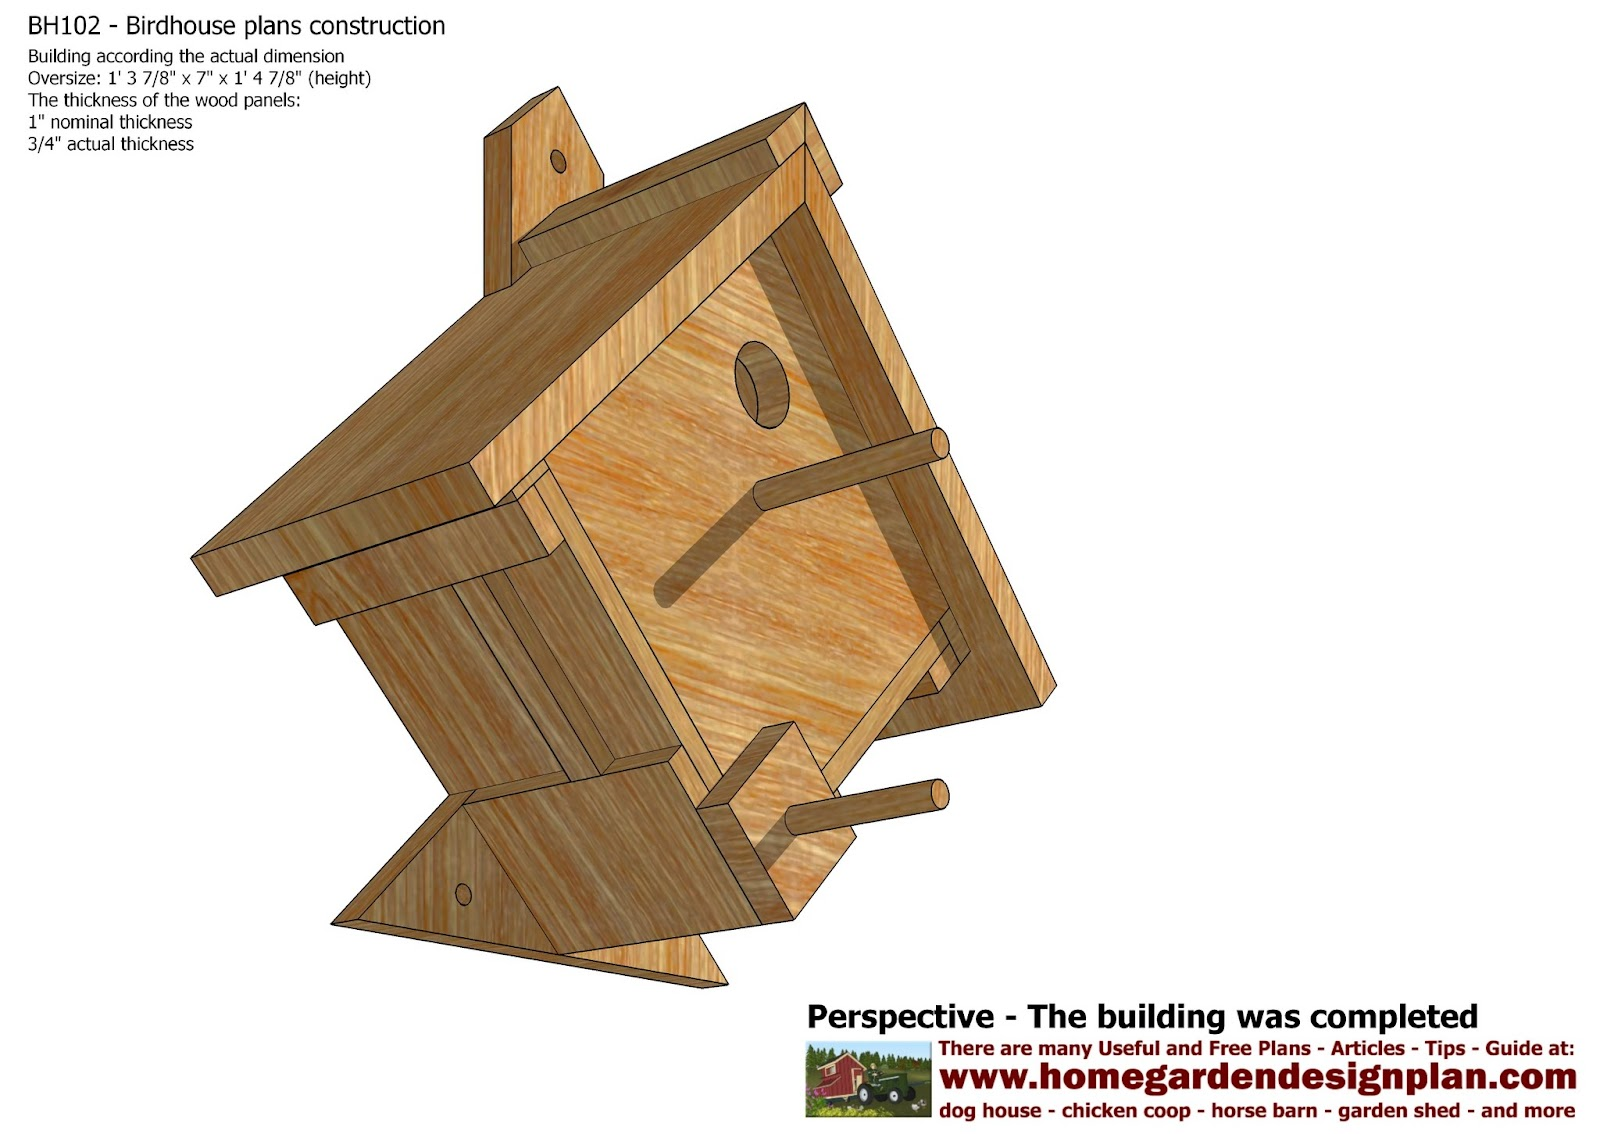 Mina bh102 bird house plans construction bird house for Song bird house plans